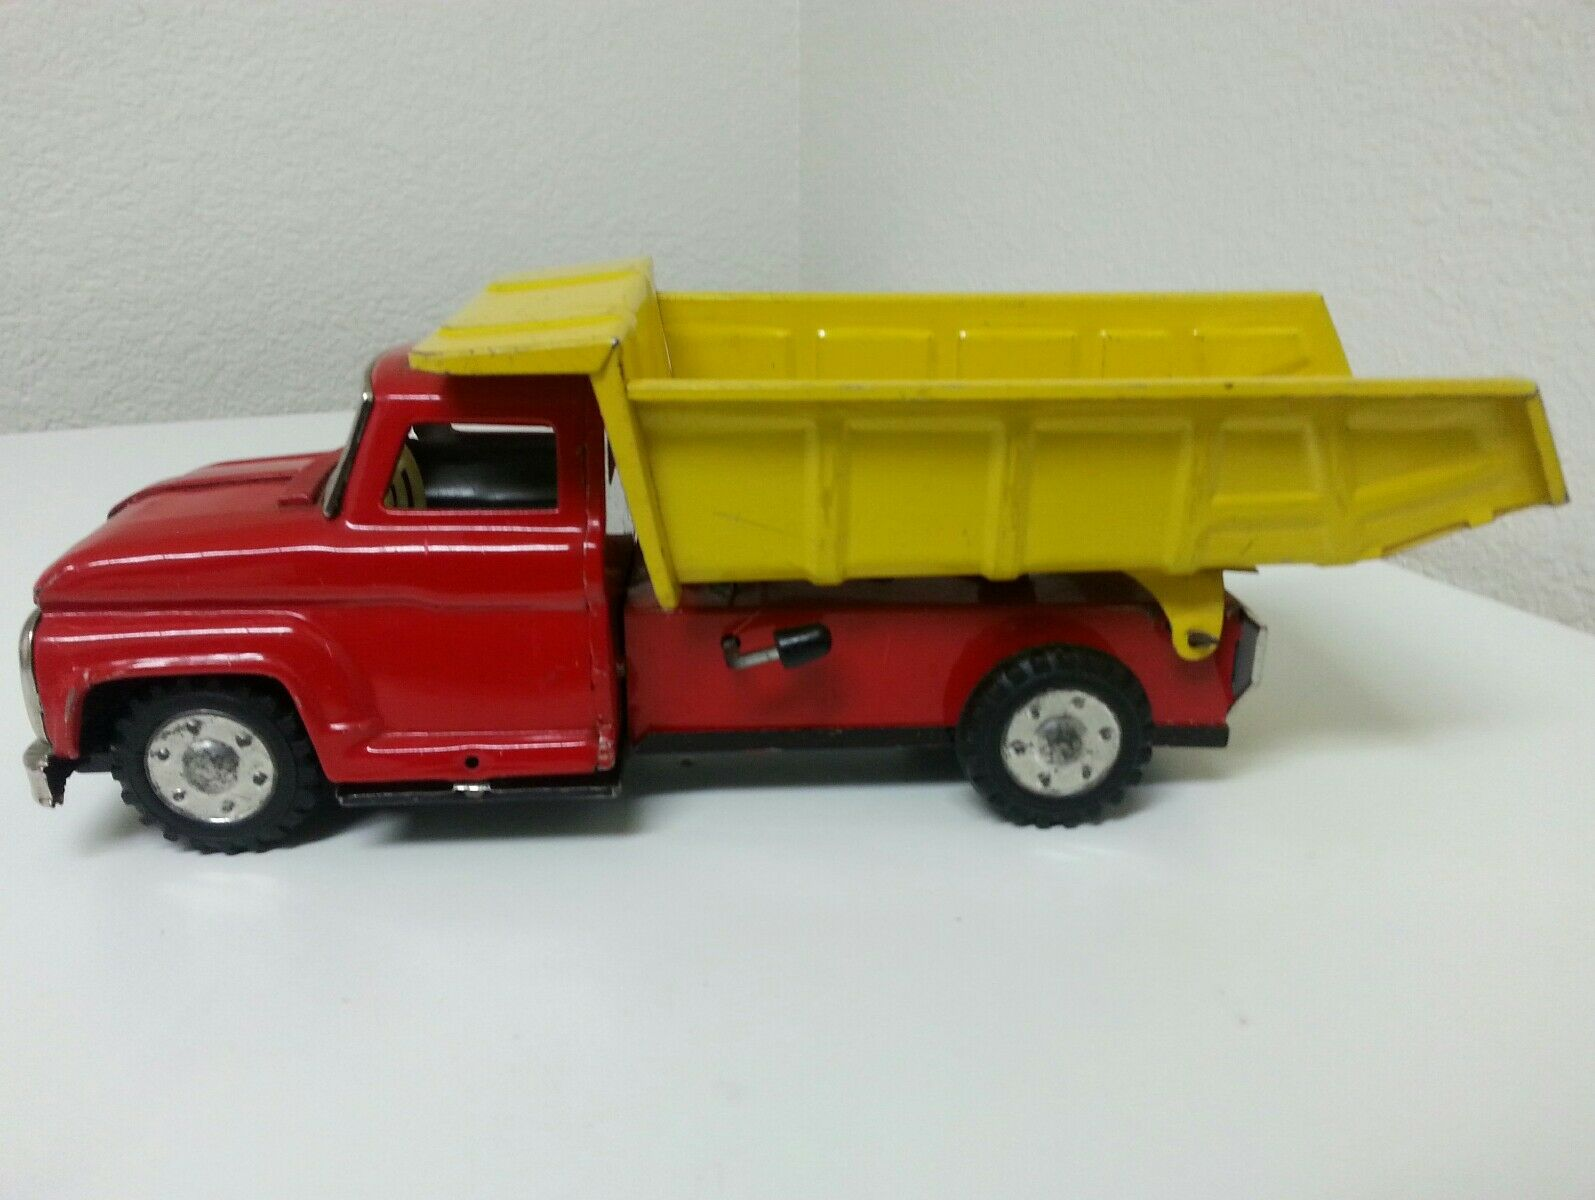 Antique Collectible Toy Dump Truck